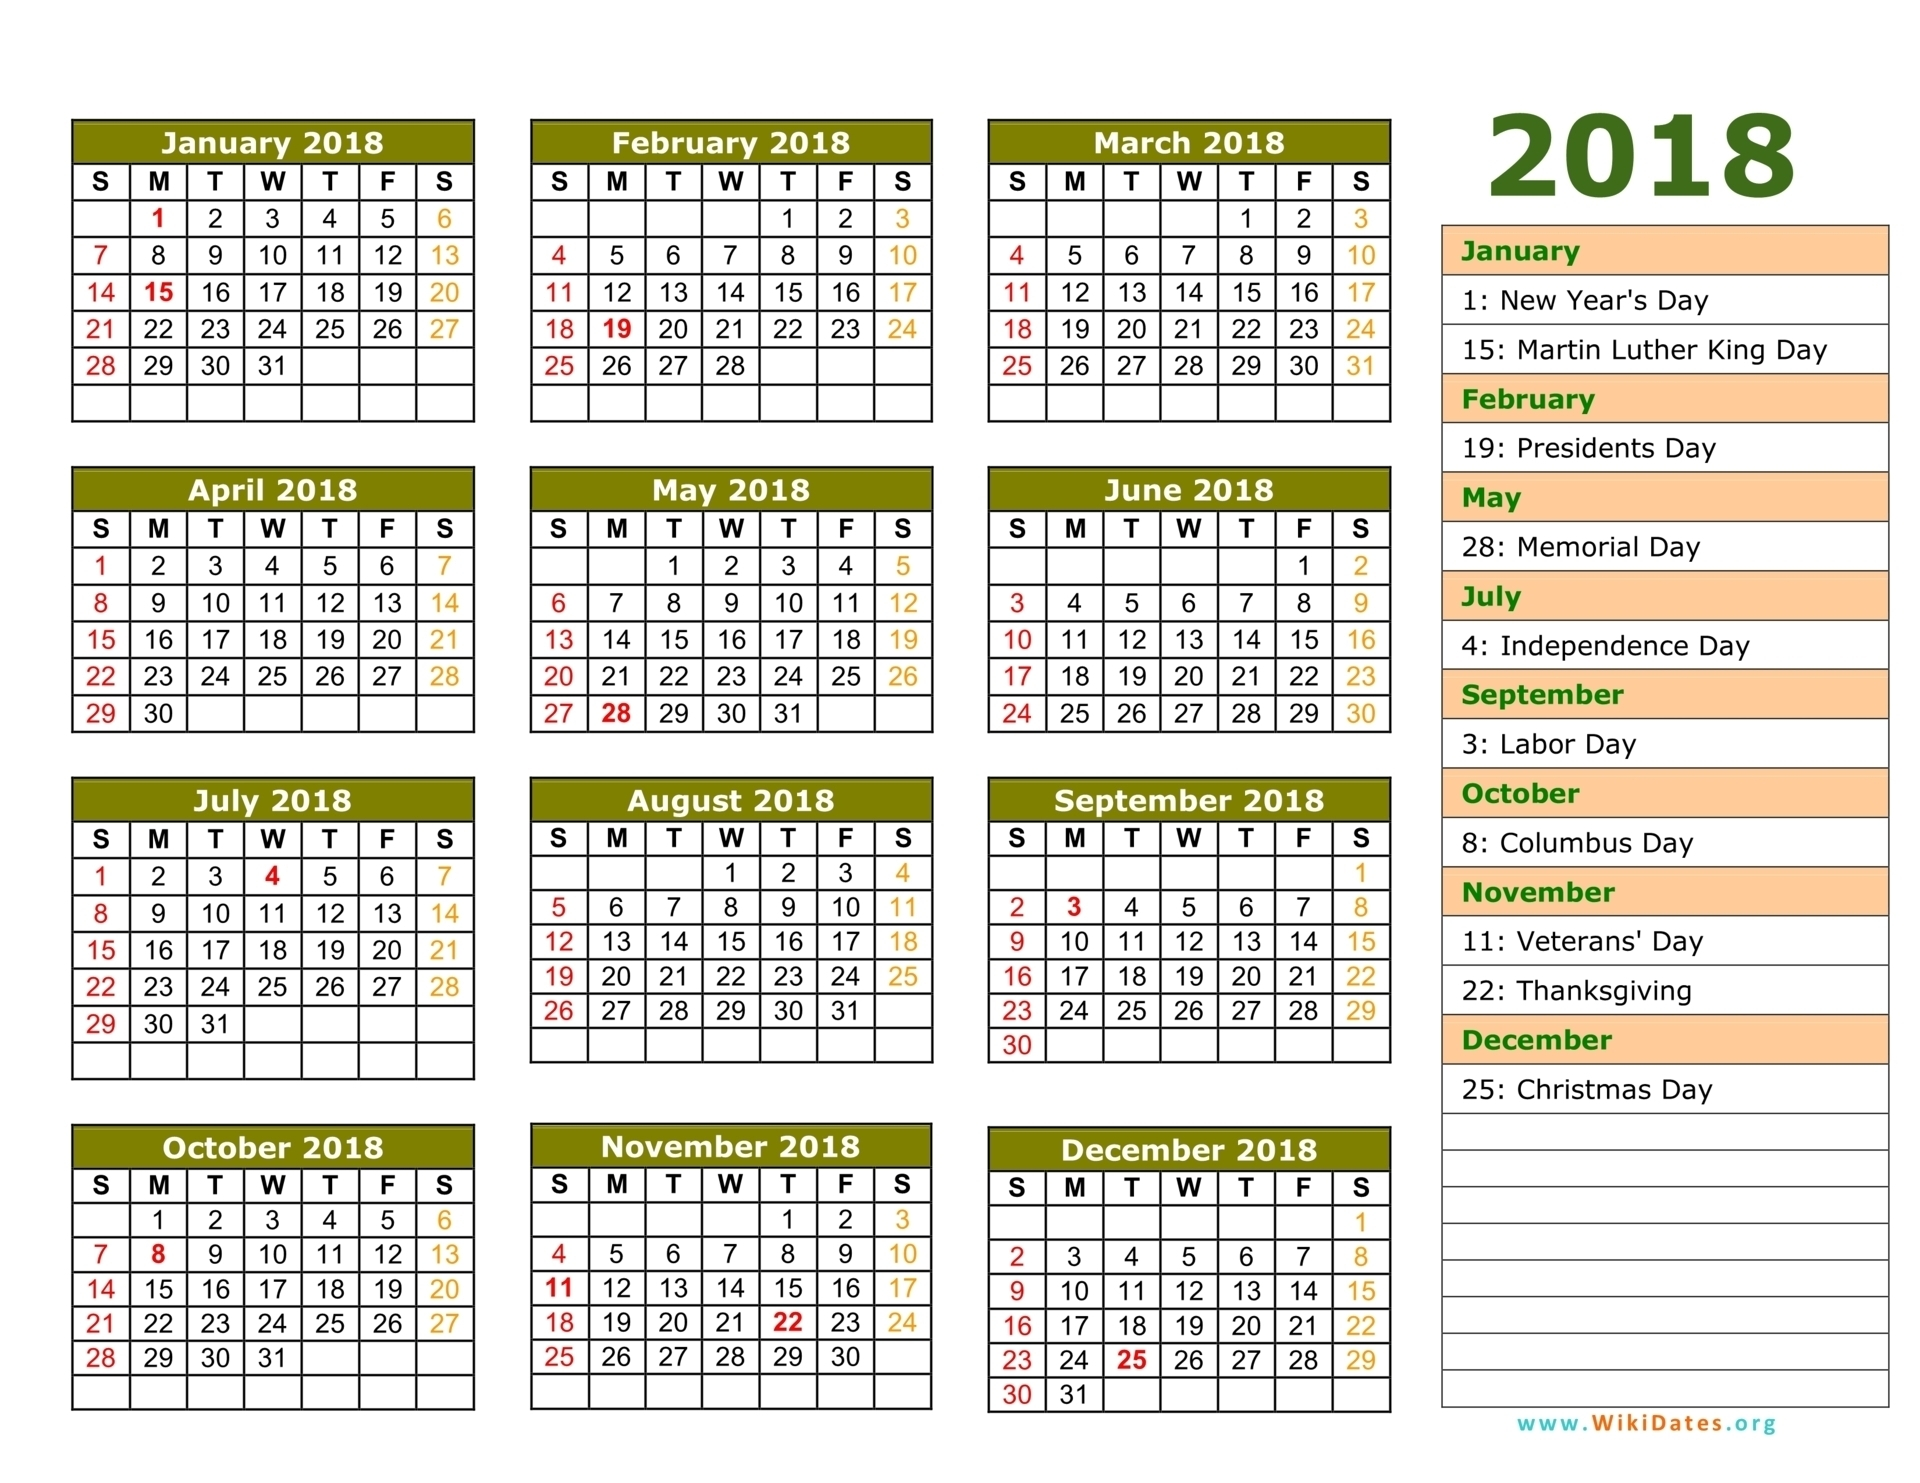 Philippines 2019 Printable Holiday Calendar. Image 0. Ic Calendar intended for Islamic Calendar For The Philippines